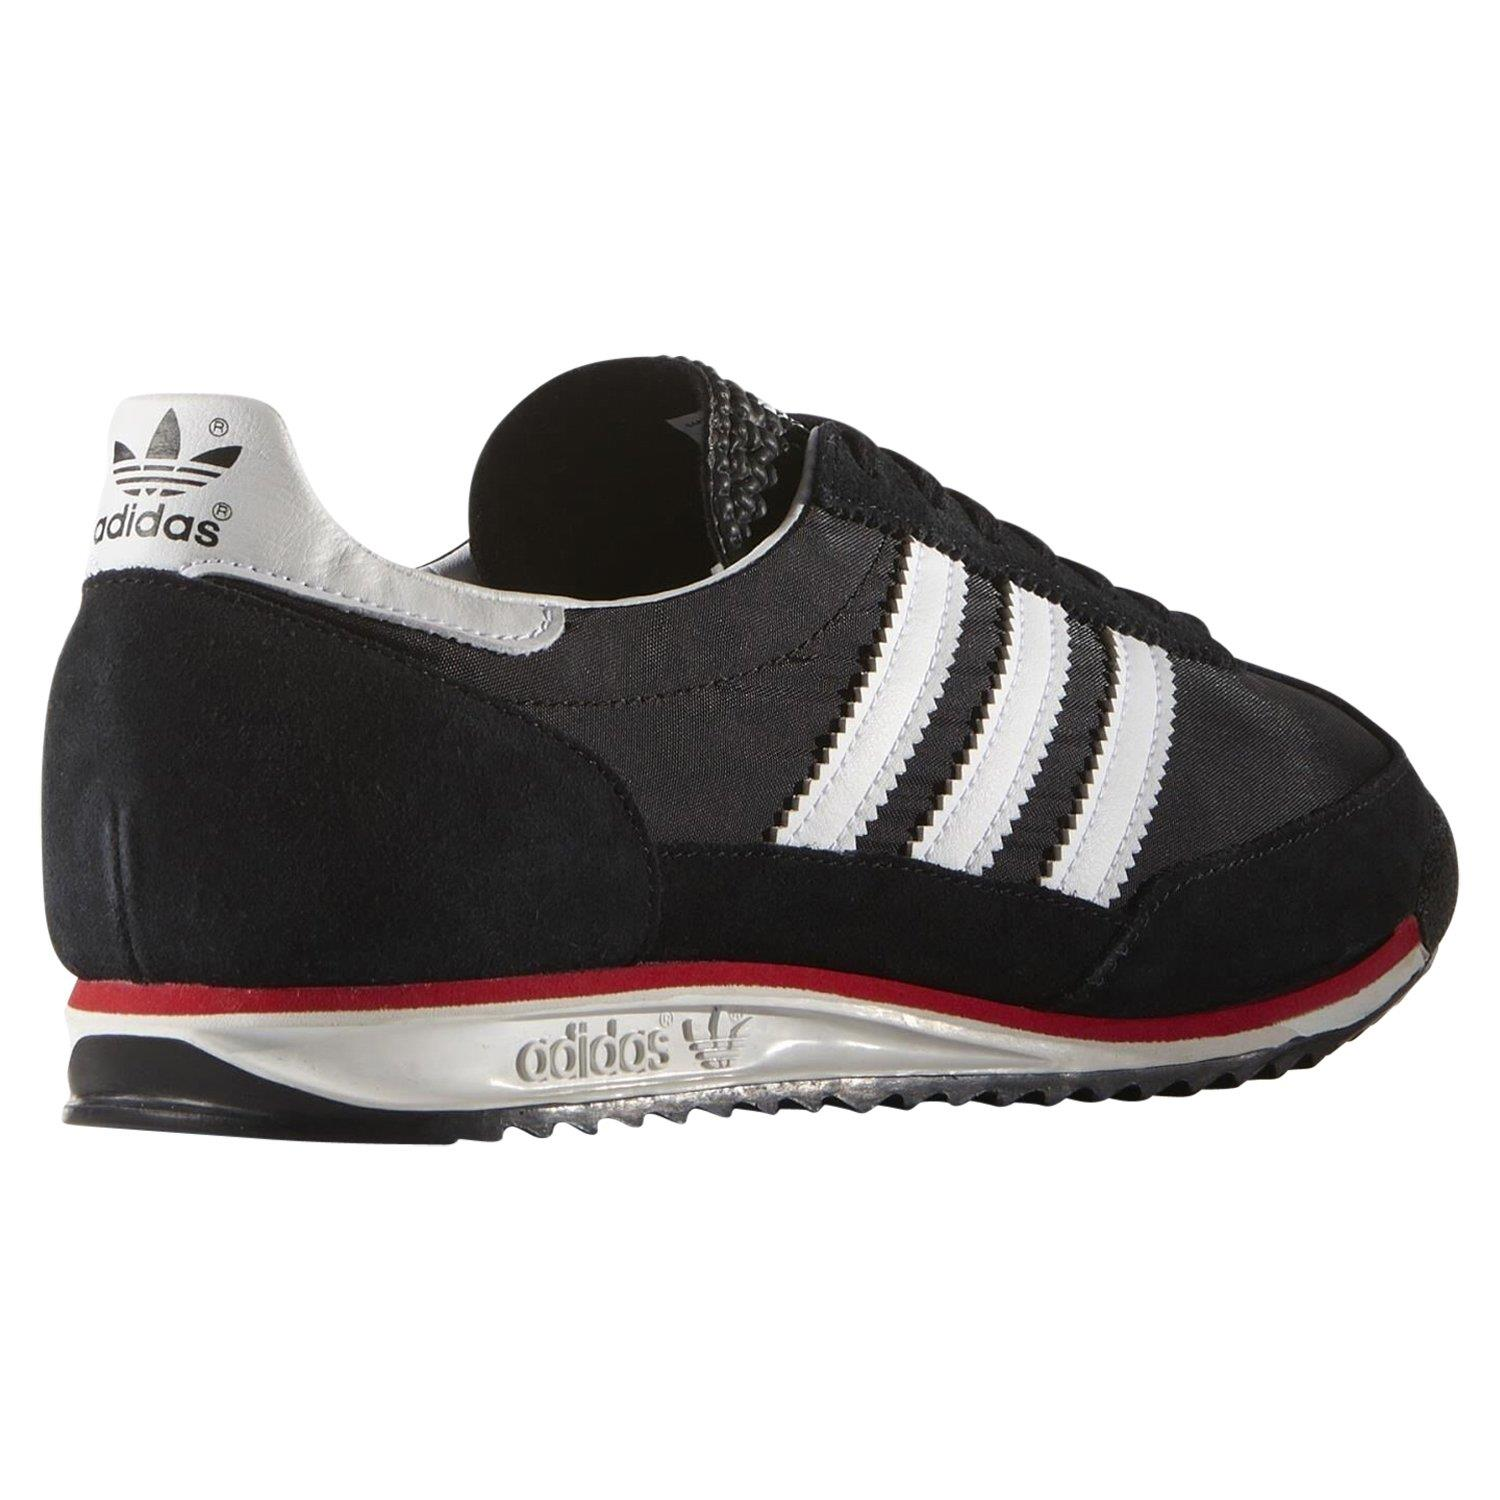 Adidas-Originals-SL72-Baskets-Homme-Trefoil-retro-vintage-Rare-Deadstock-Shoes miniature 3